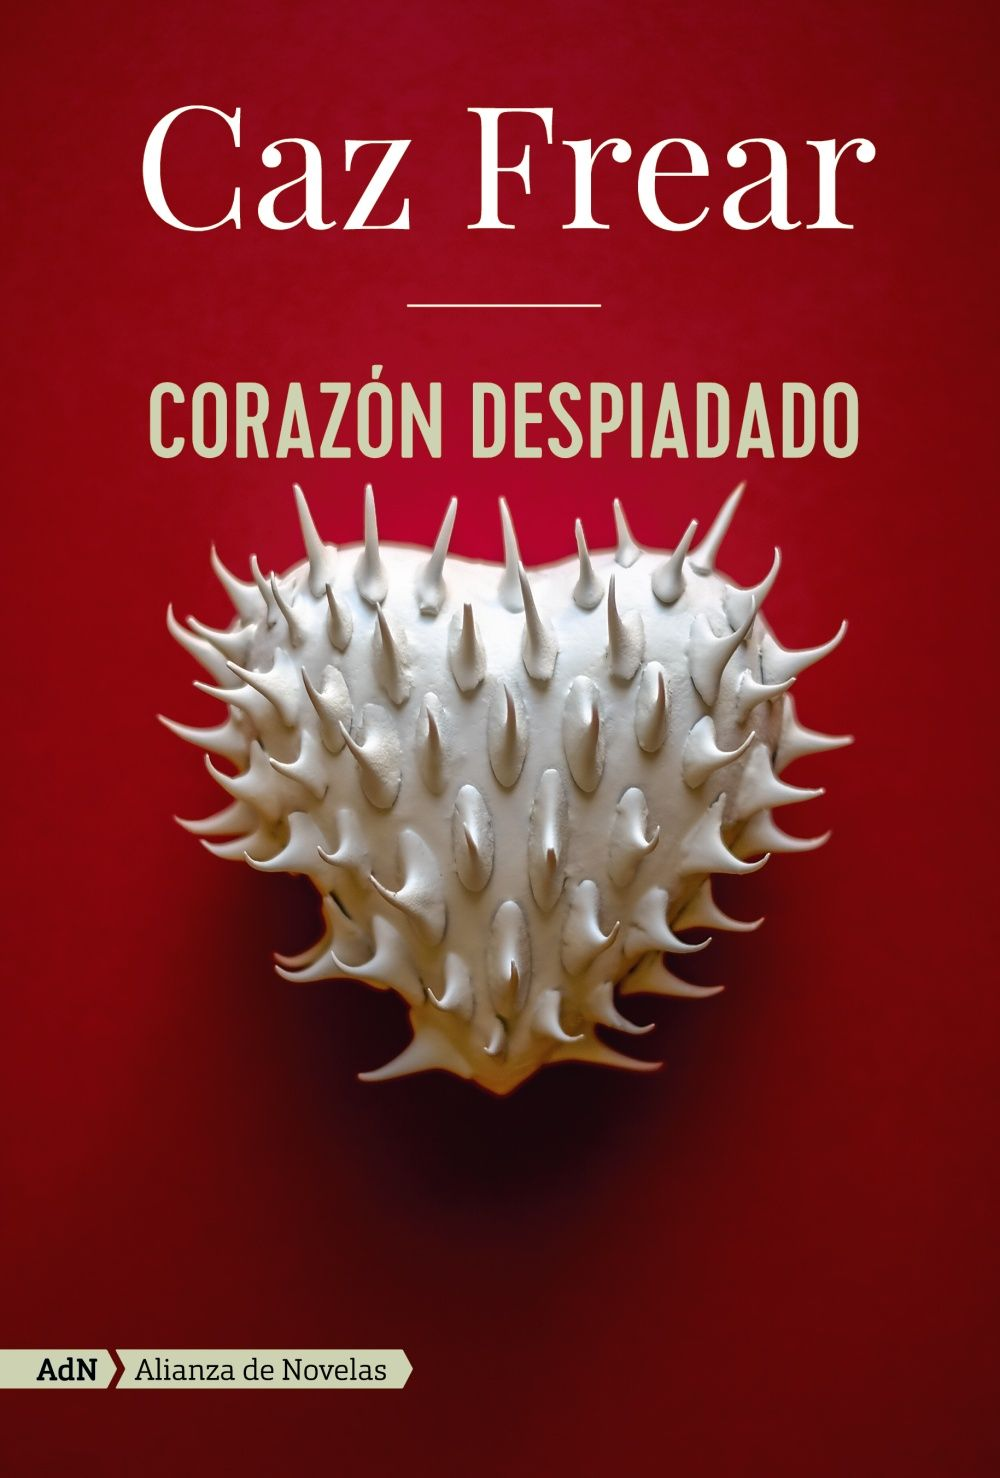 CORAZON DESPIADADO